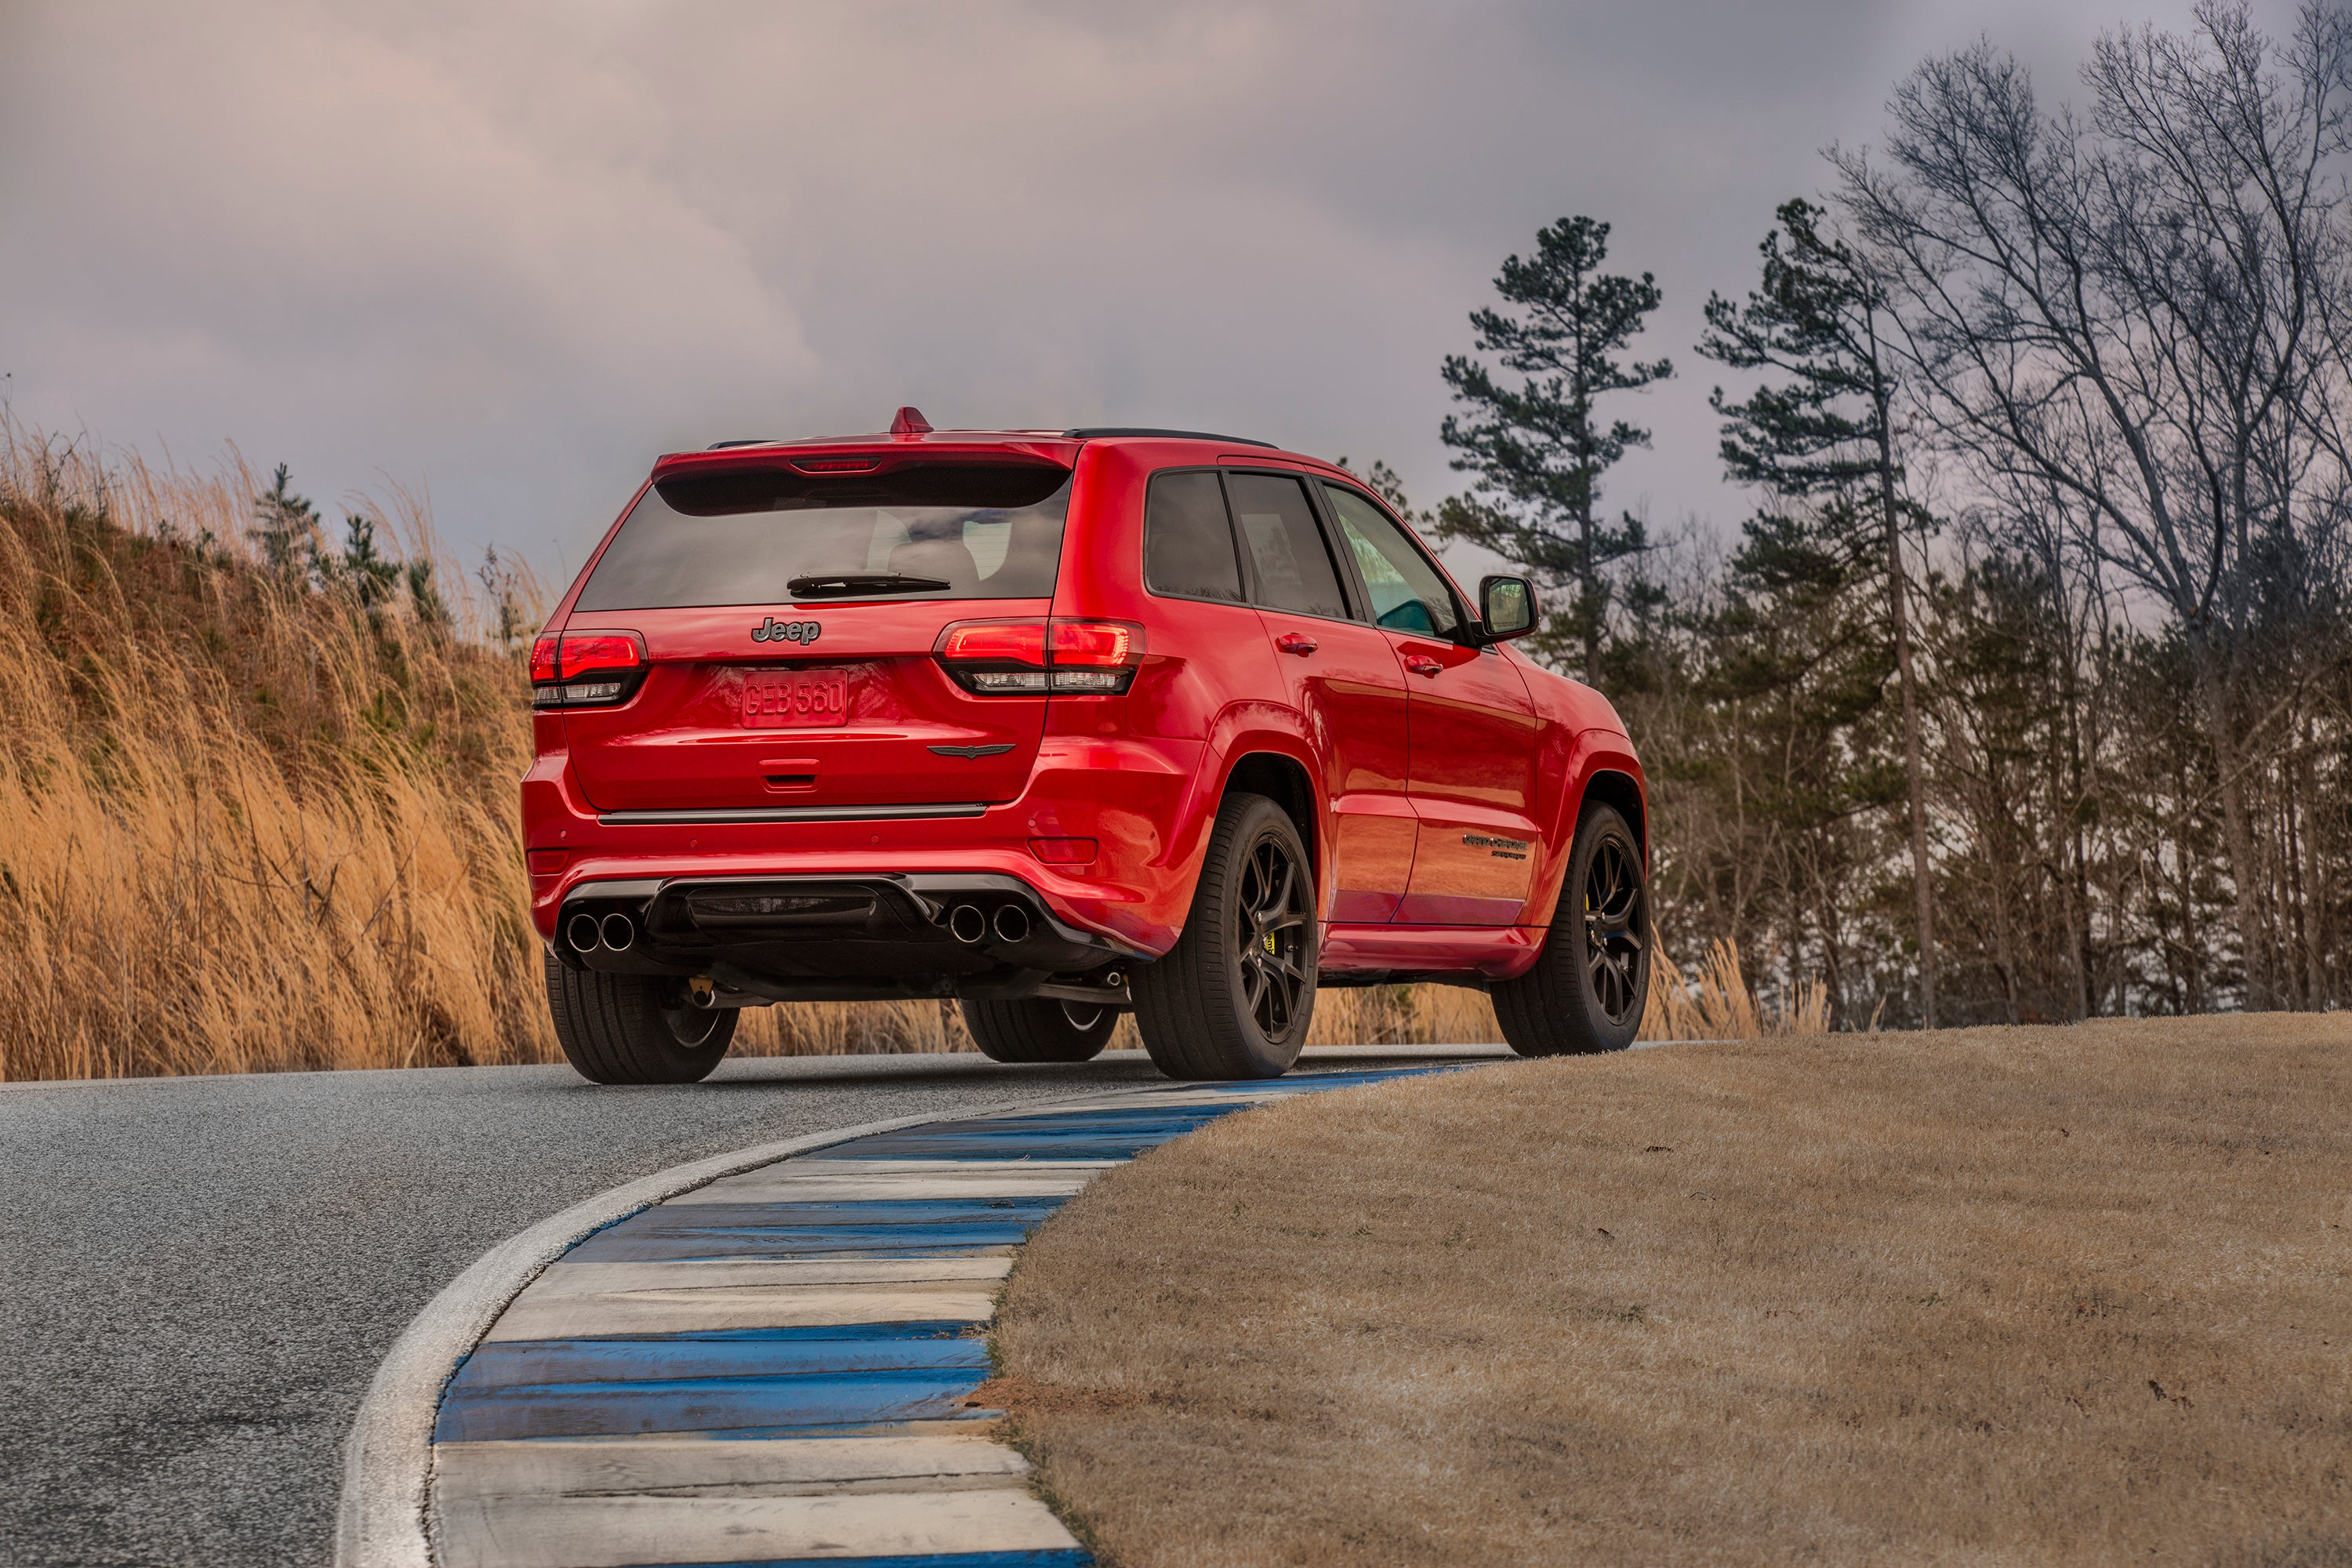 10 things about the Jeep Grand Cherokee Trackhawk | Boston com